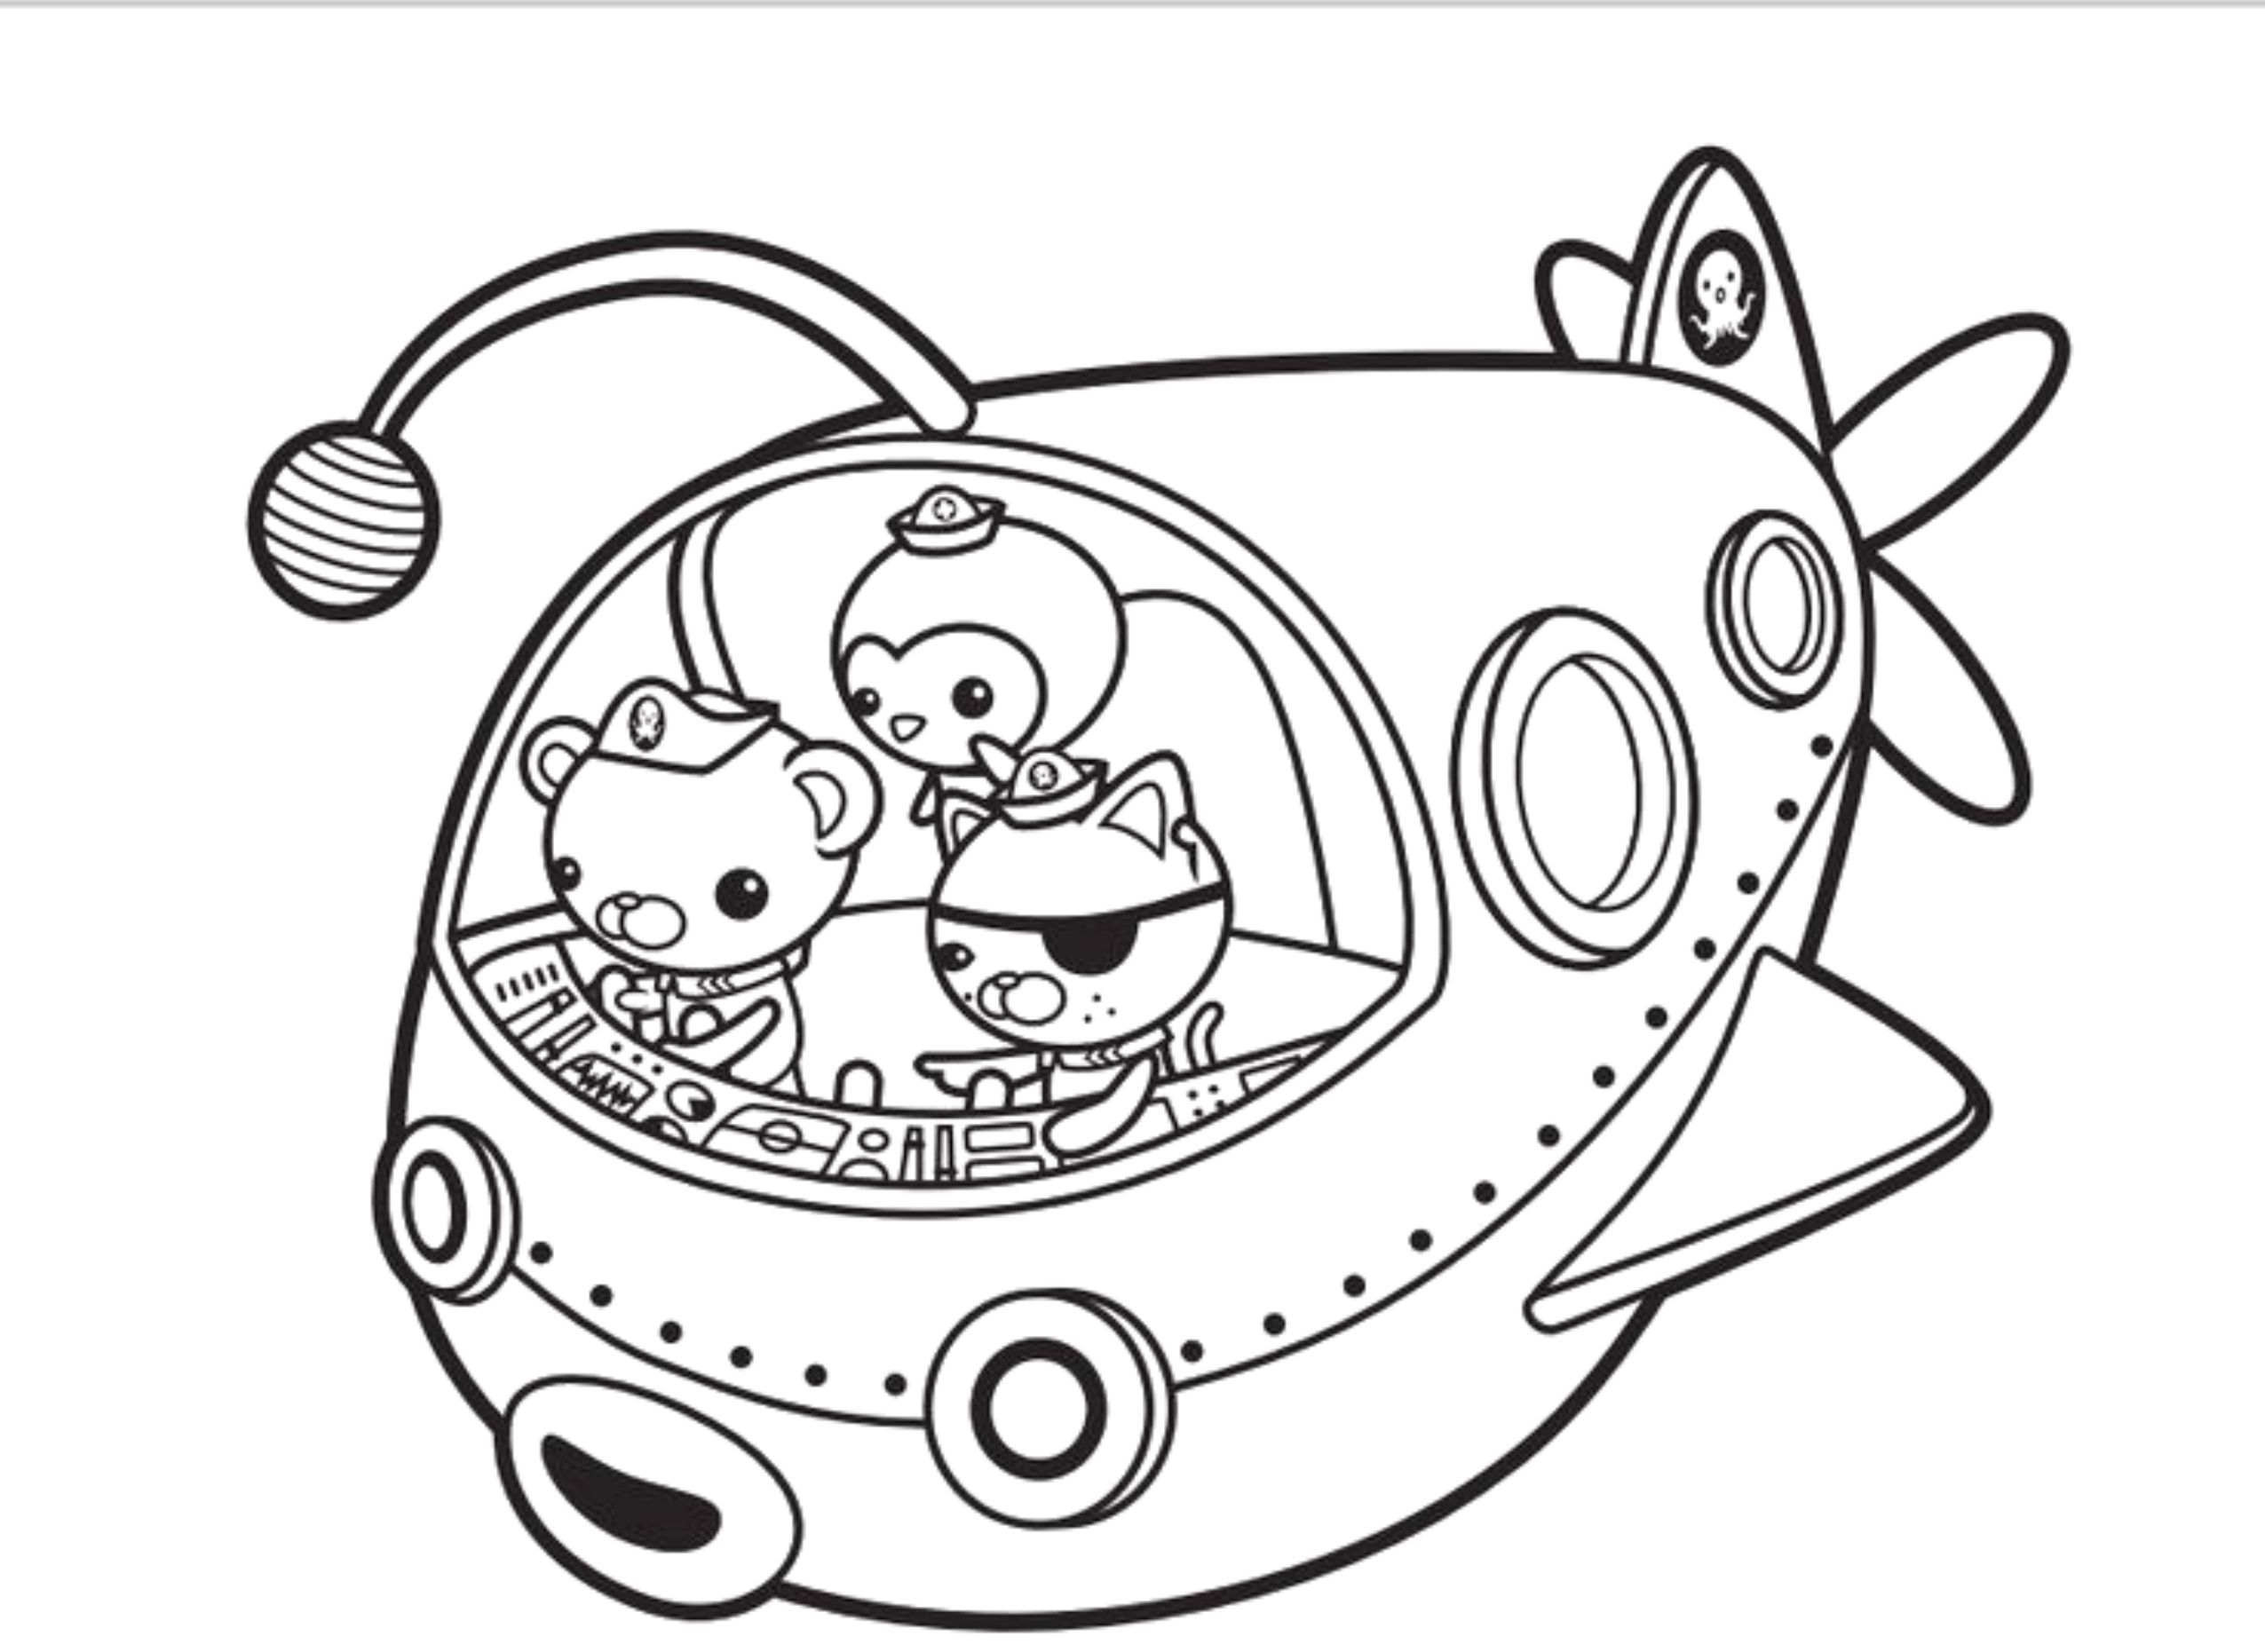 Octonauts Coloring Pages  Print & Download Octonauts Coloring Pages for Your Kid's